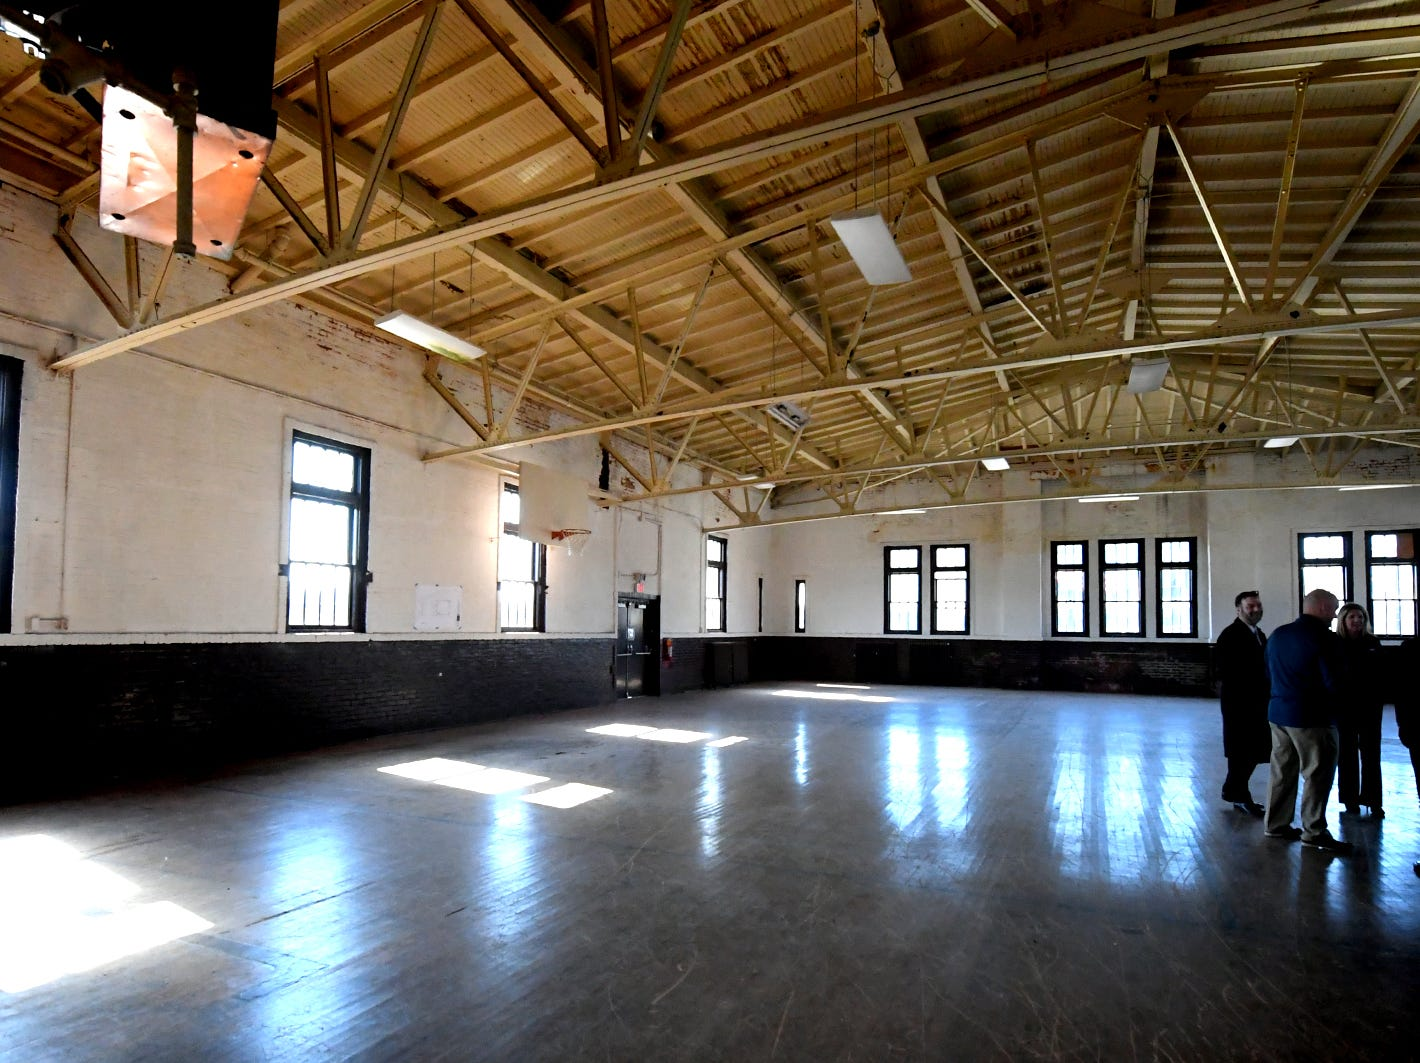 An interior view of the upstairs gymnasium at the vacant York Armory Thursday, Feb. 28, 2019. Keystone Kidspace founders announced a $6 million capital campaign during a press event there, to transform the building into an experiential learning center. Construction is slated to start this summer with an opening date of summer 2020. Bill Kalina photo